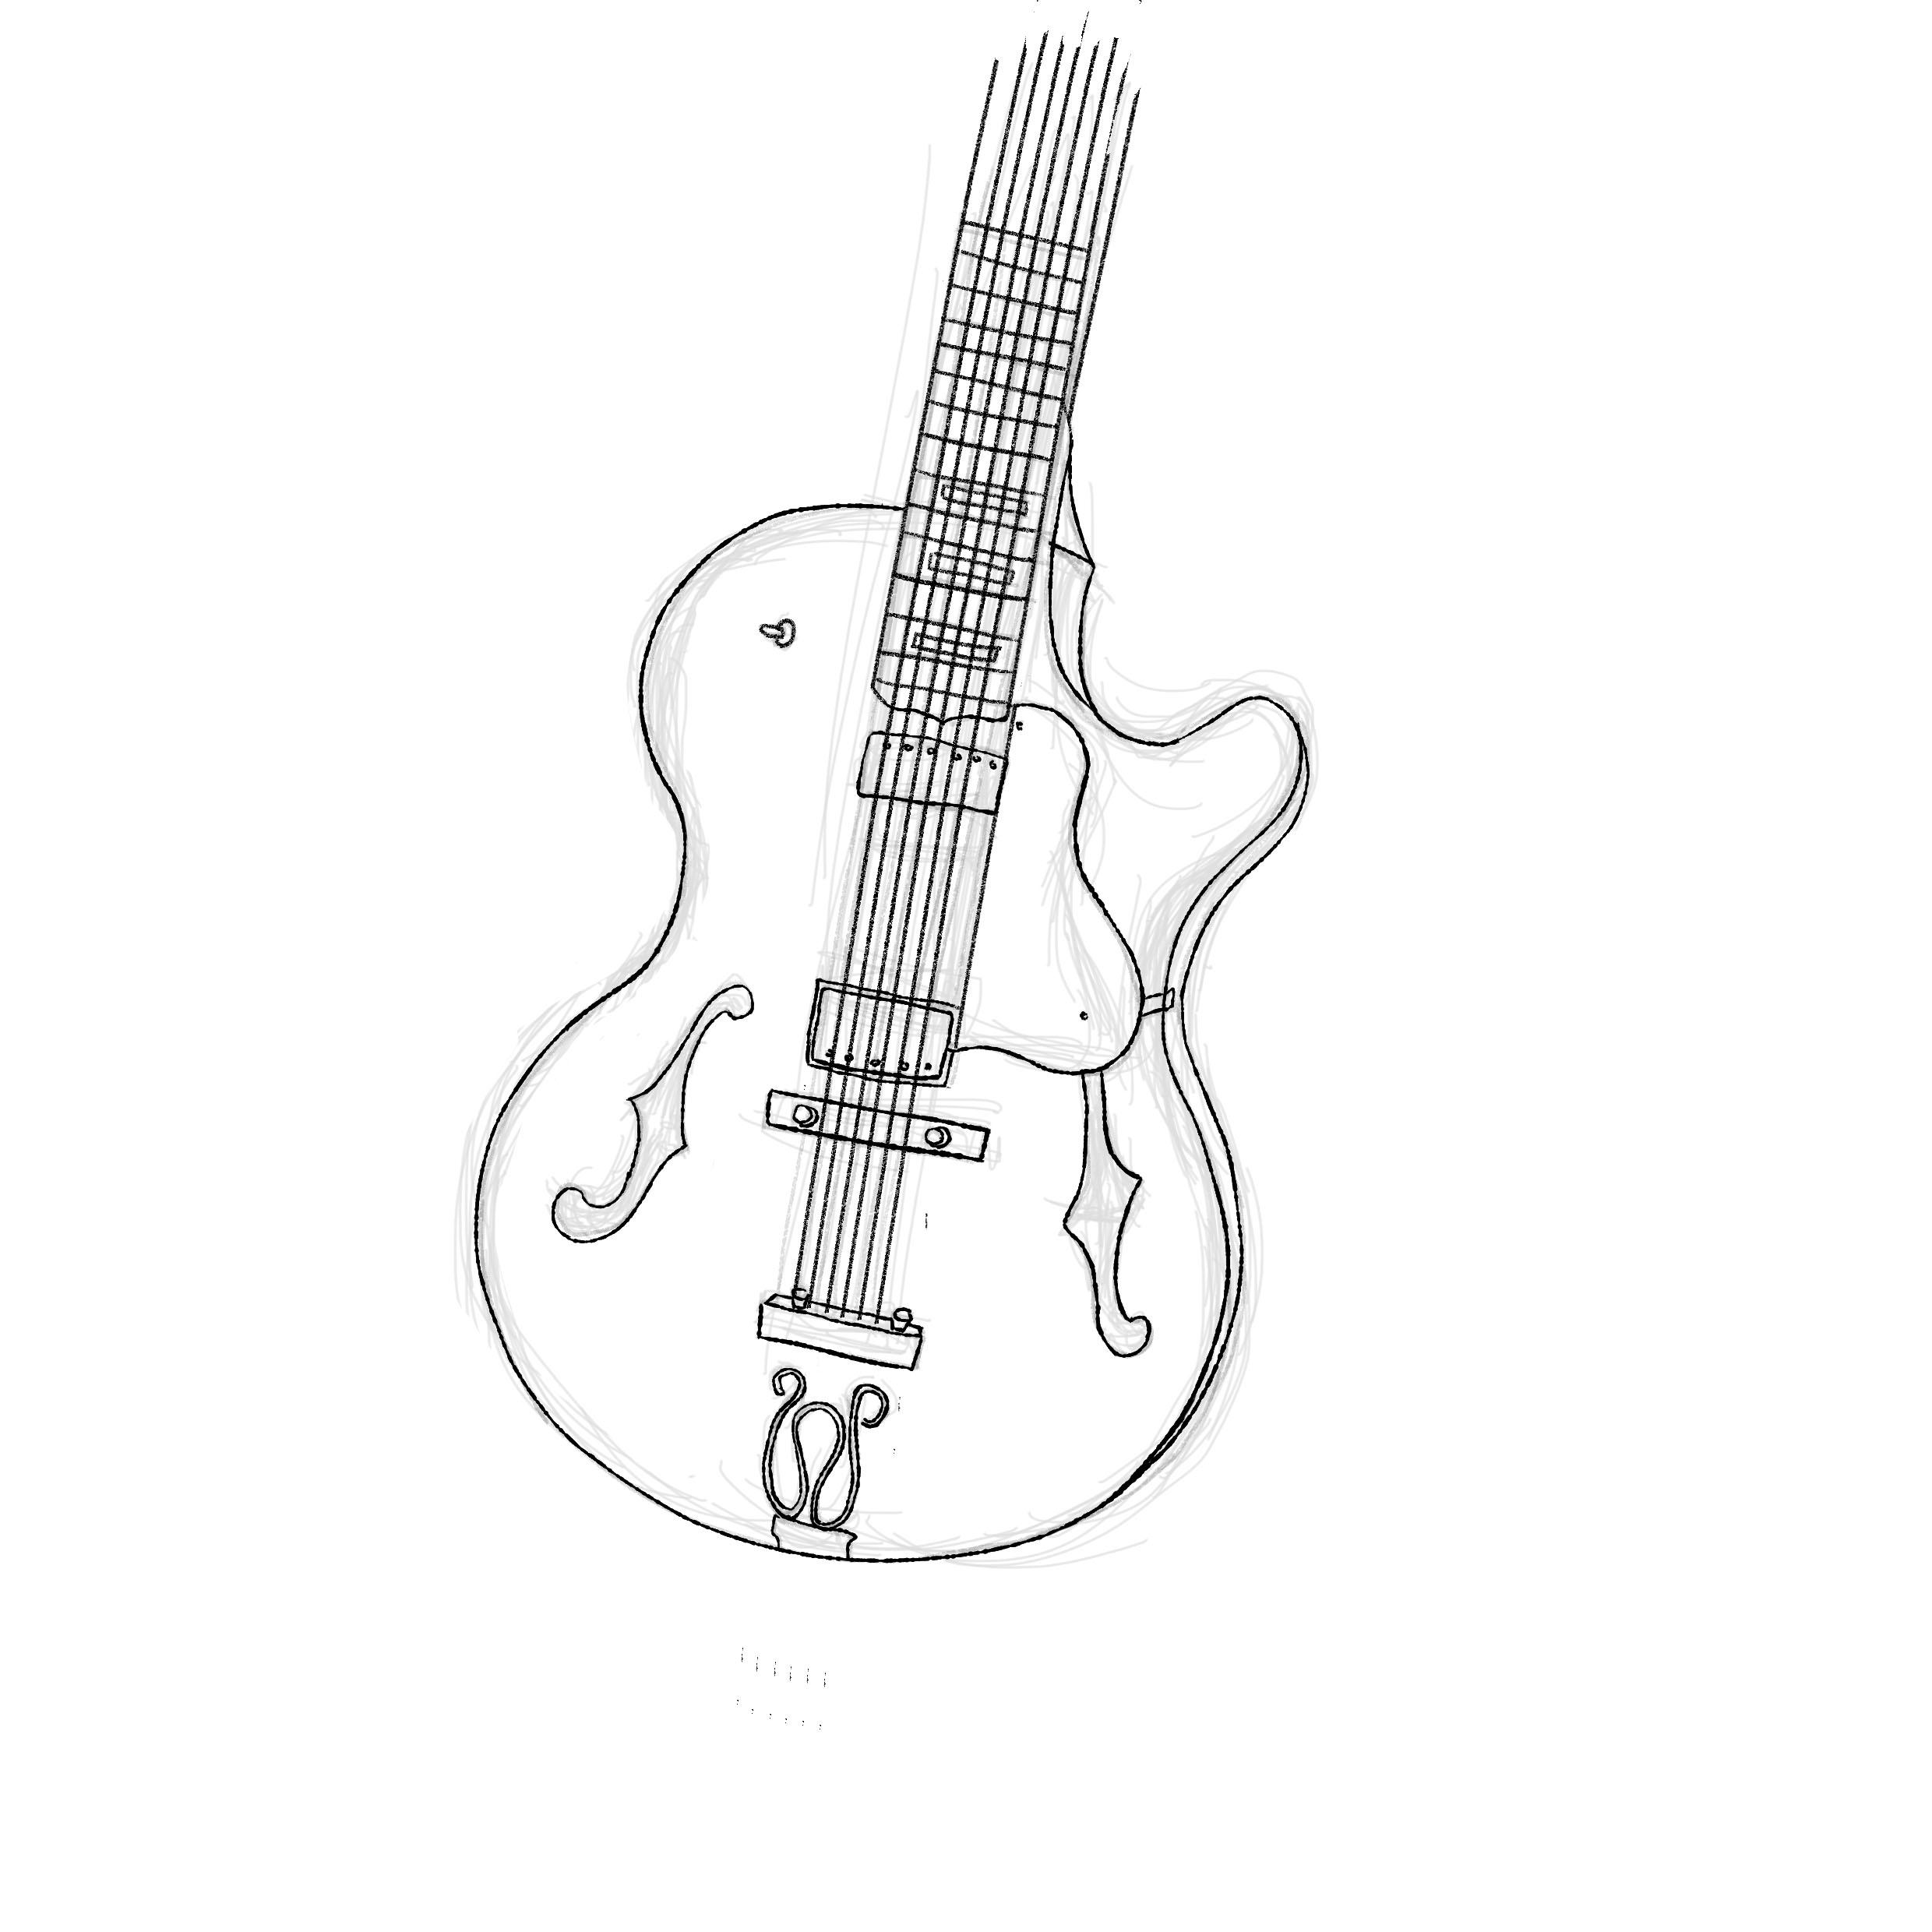 guitar ink - image 1 - student project